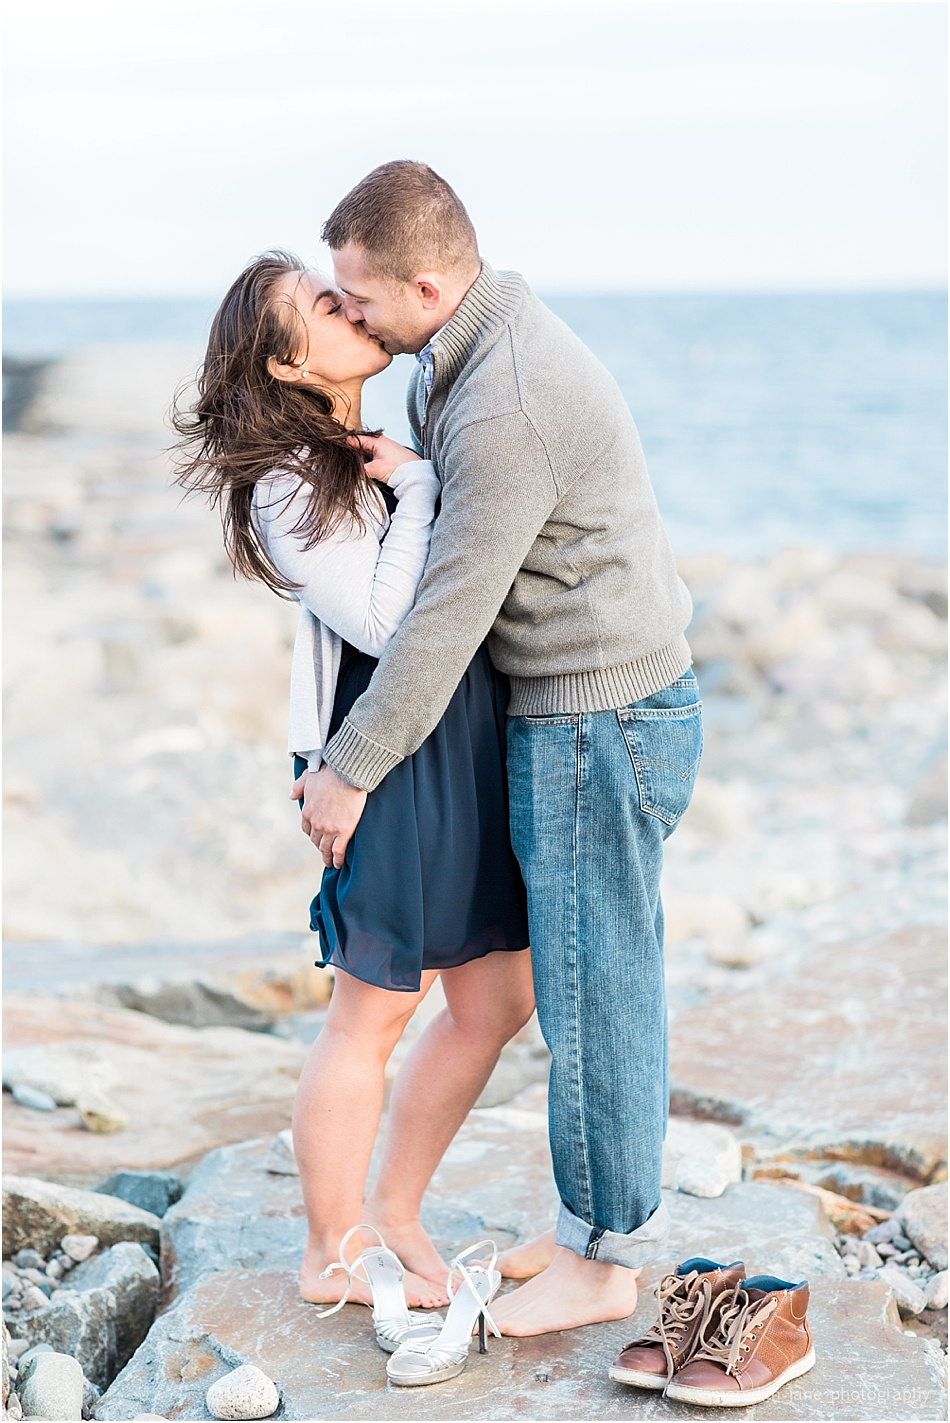 scituate_harbor_spit_engagement_session_cape_cod_boston_wedding_photographer_Meredith_Jane_Photography_photo_0094.jpg